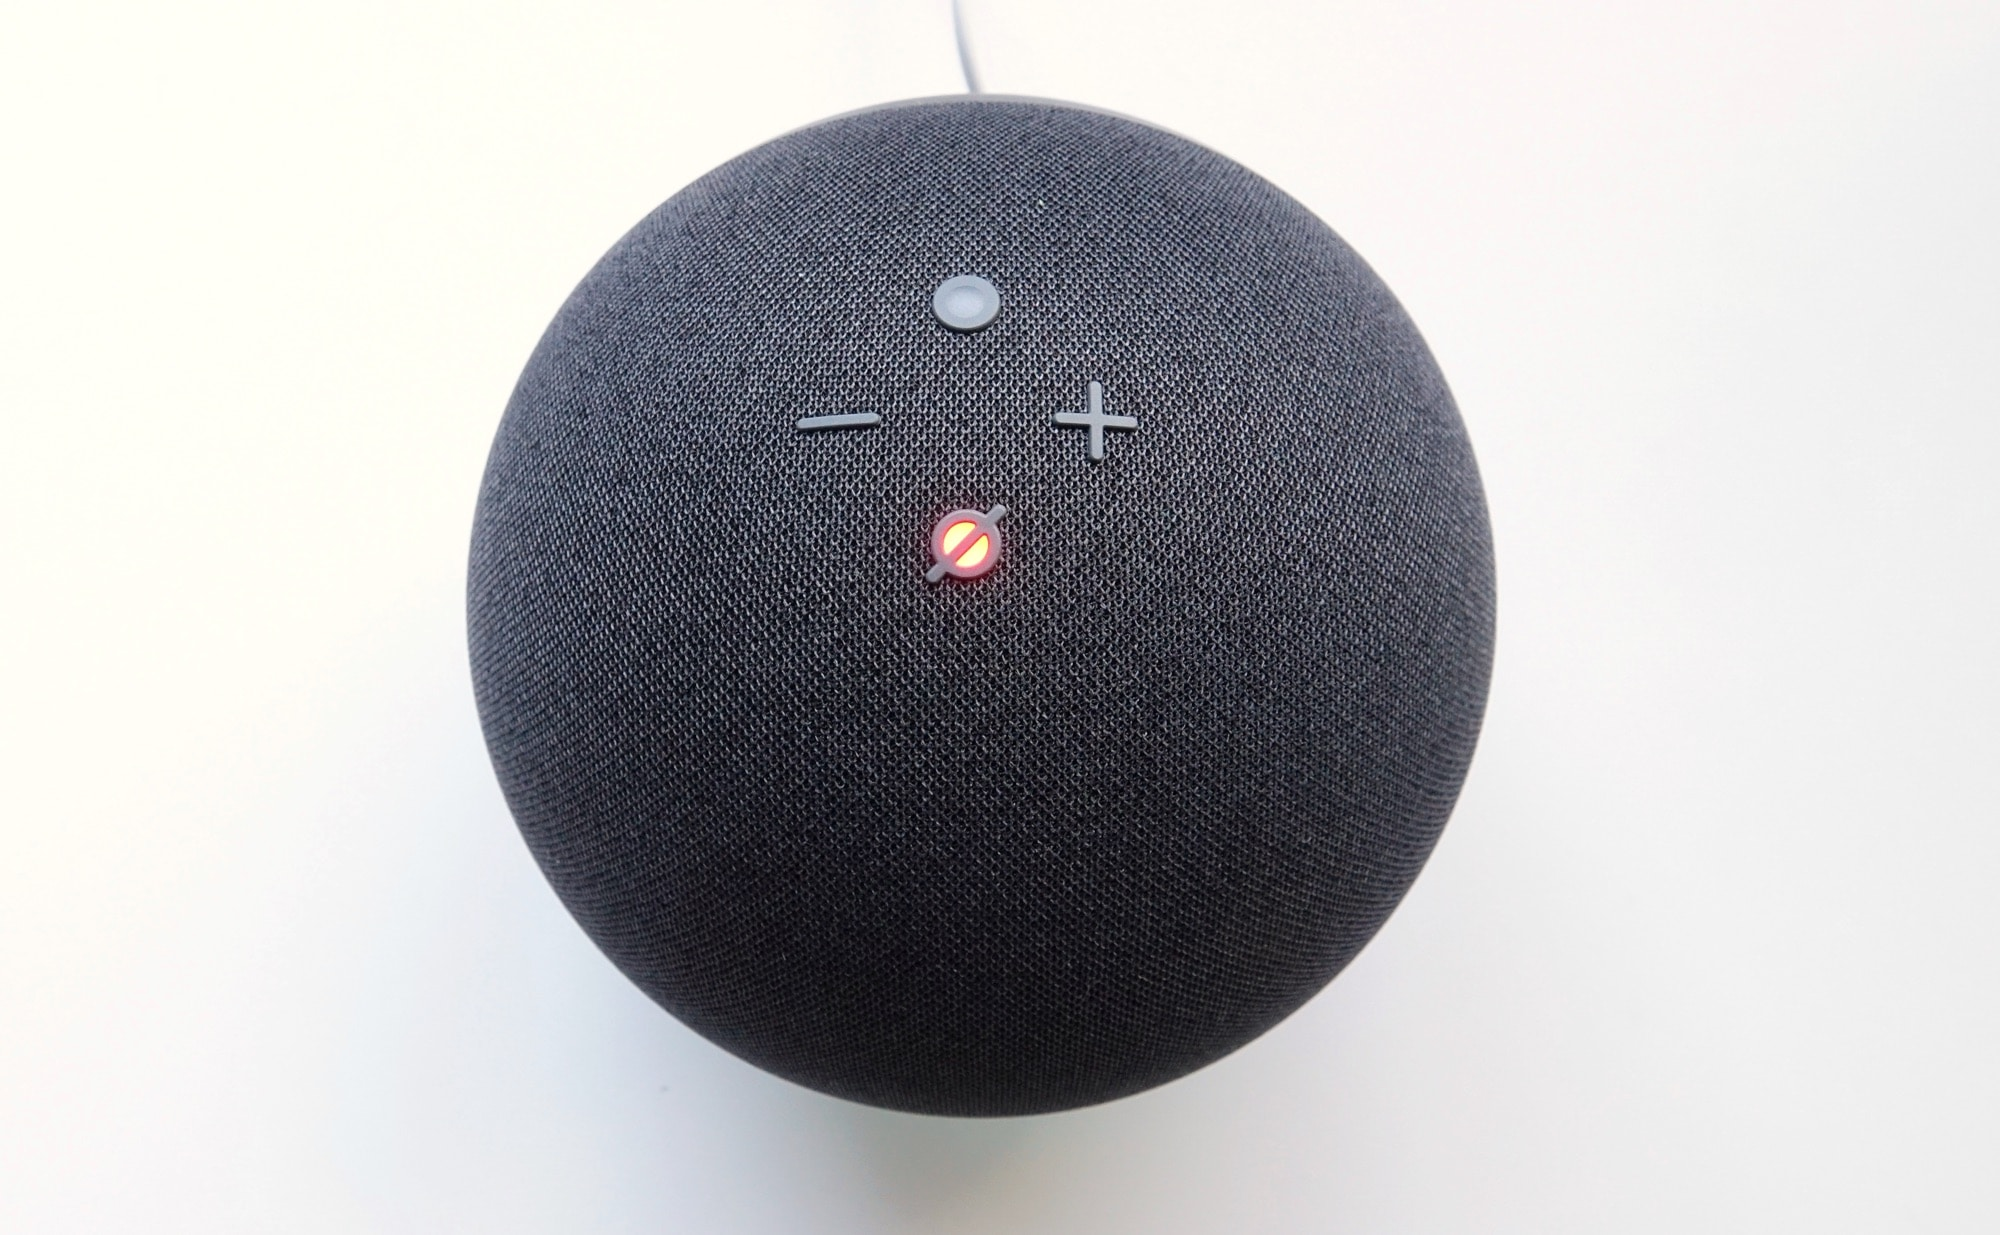 Switching off the mic on the Echo 4 gives you a red light both at the top and bottom, just to make itself clear.